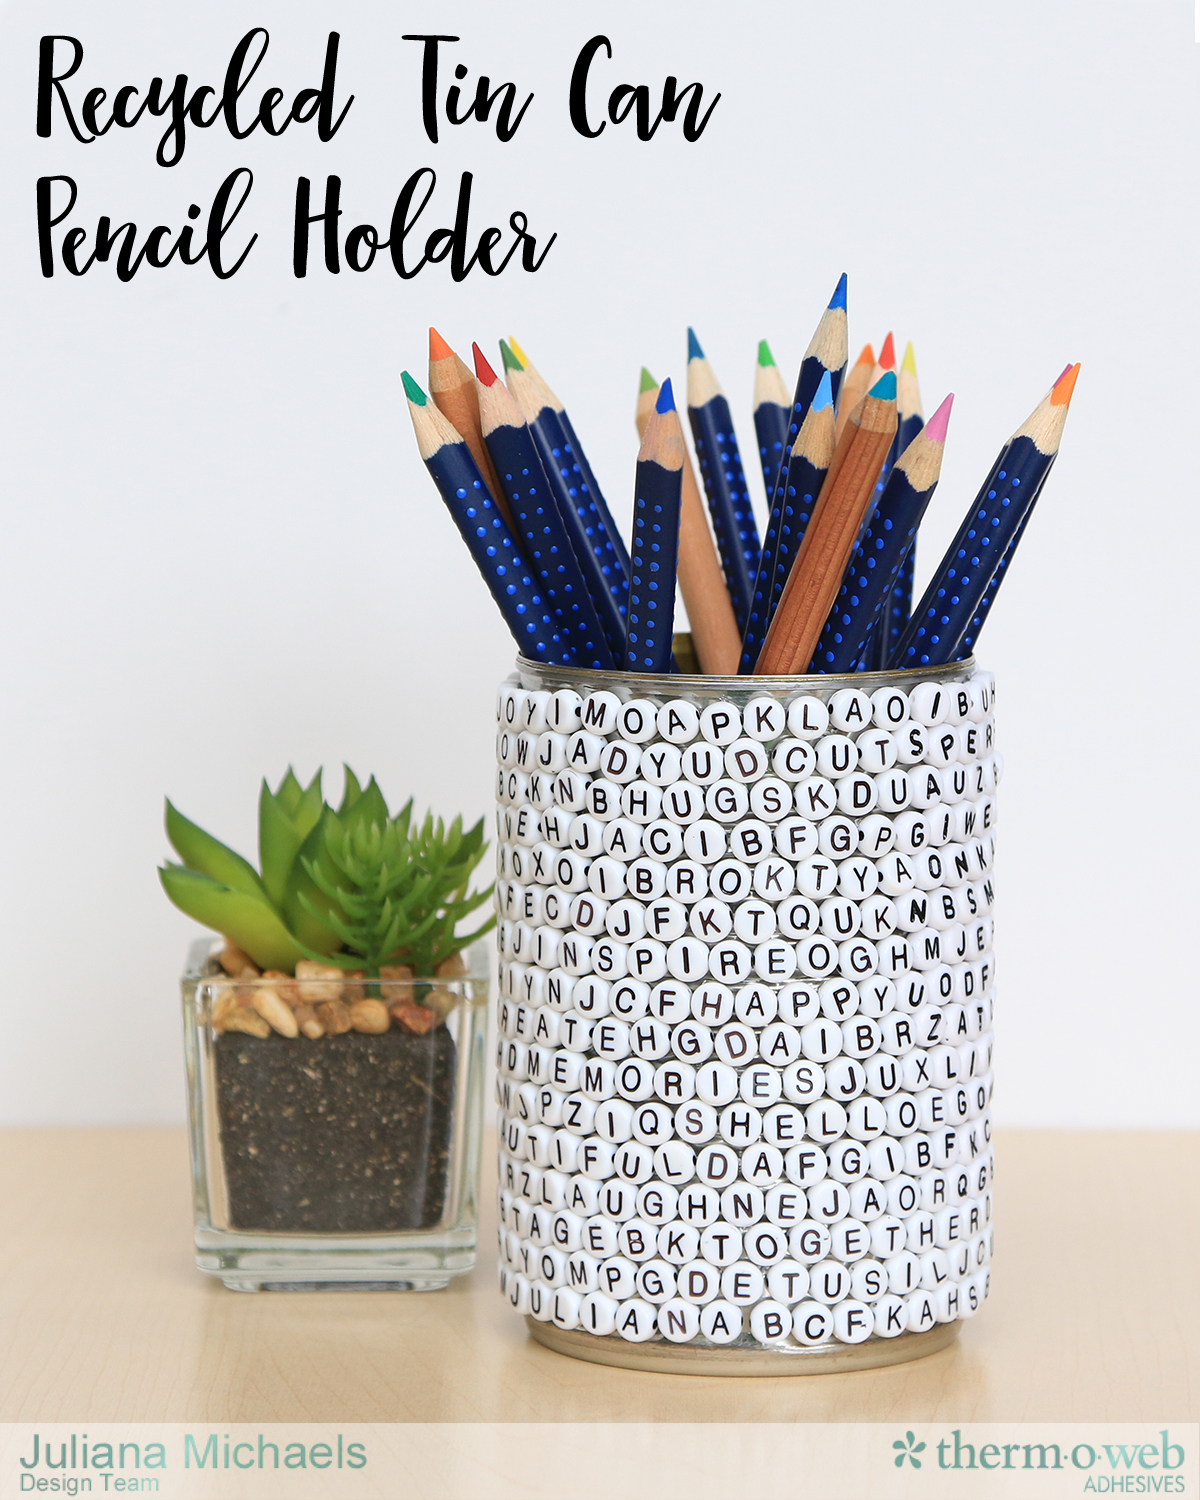 Recycled_Tin_Can_Pencil_Holder_Alphabet_Beads_Therm_O_Web_Sticky_Lines_Adhesives_Juliana_Micheals_02